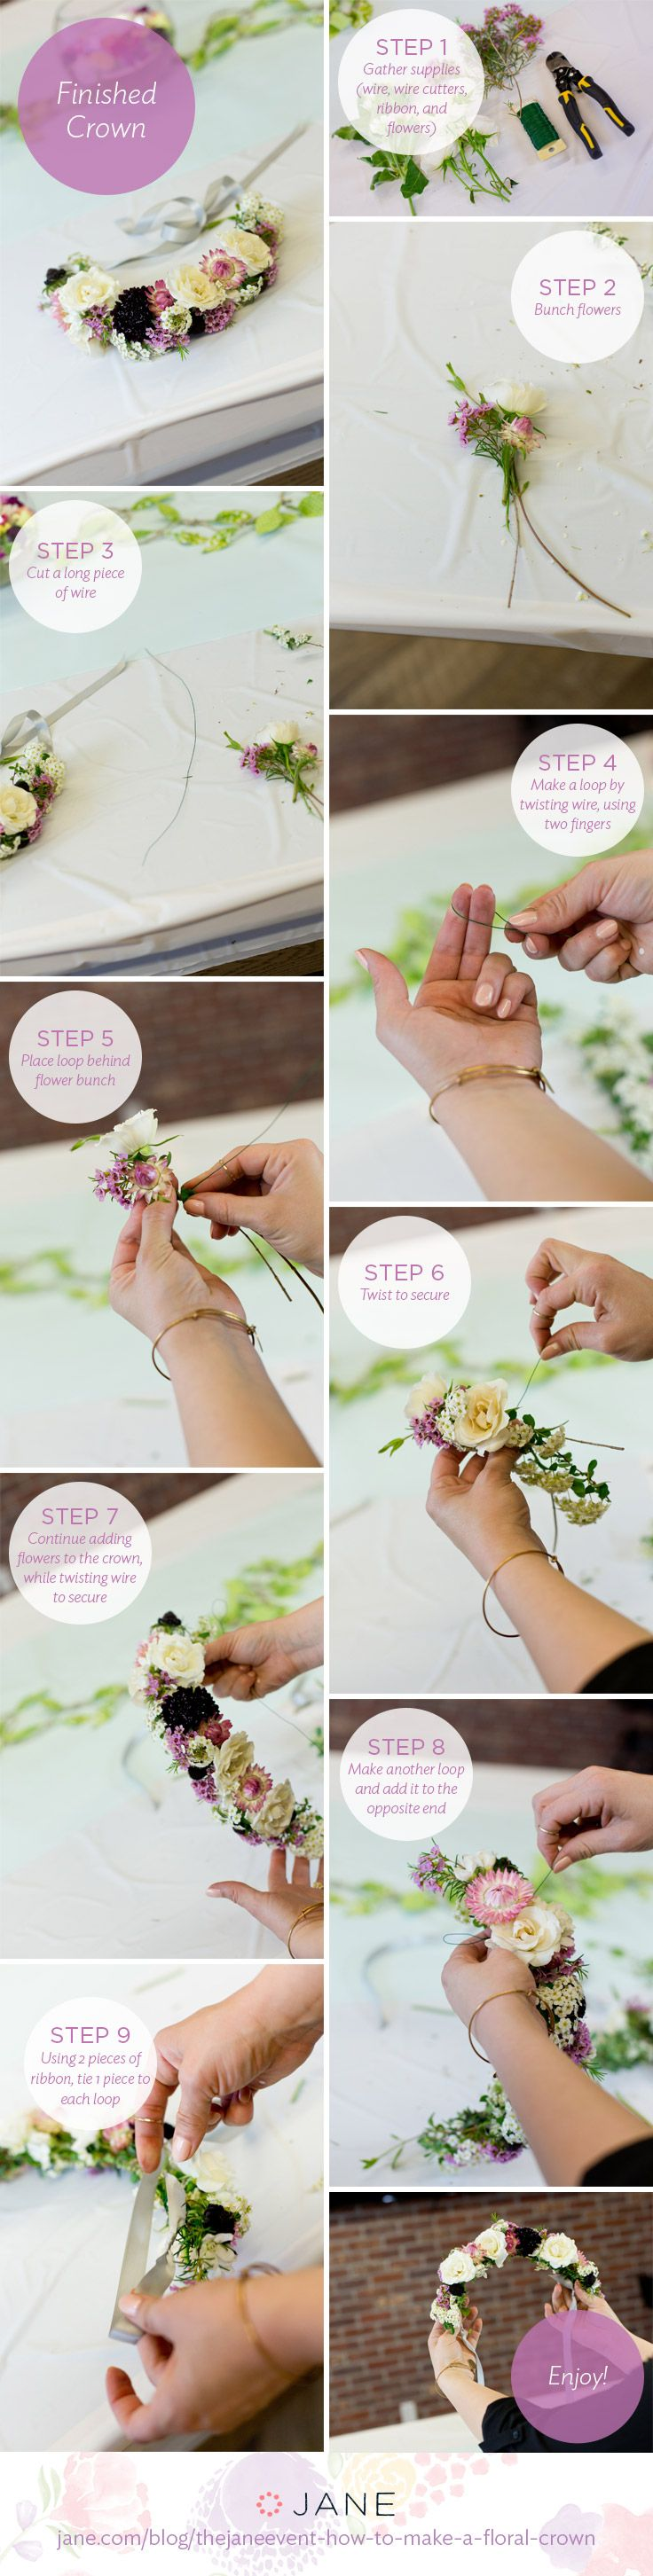 Thejaneevent how to make a floral crown floral jeans flower thejaneevent how to make a floral crown izmirmasajfo Choice Image